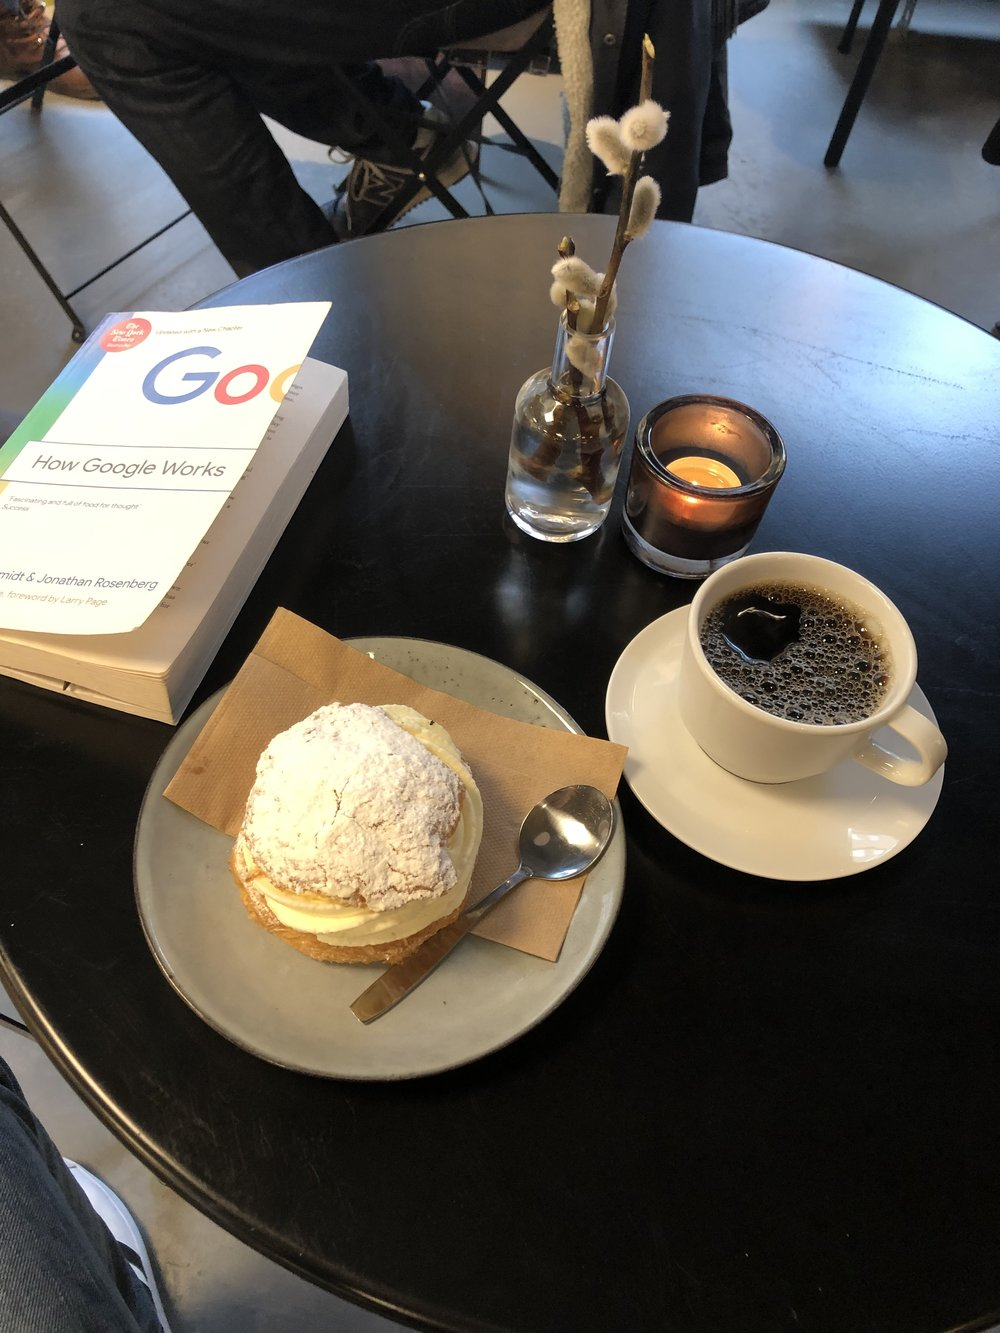 Semla Swedish - Delicious bun while sipping a coffee and reading a book …. meanwhile outside -6 and snowing. Life is good 😉